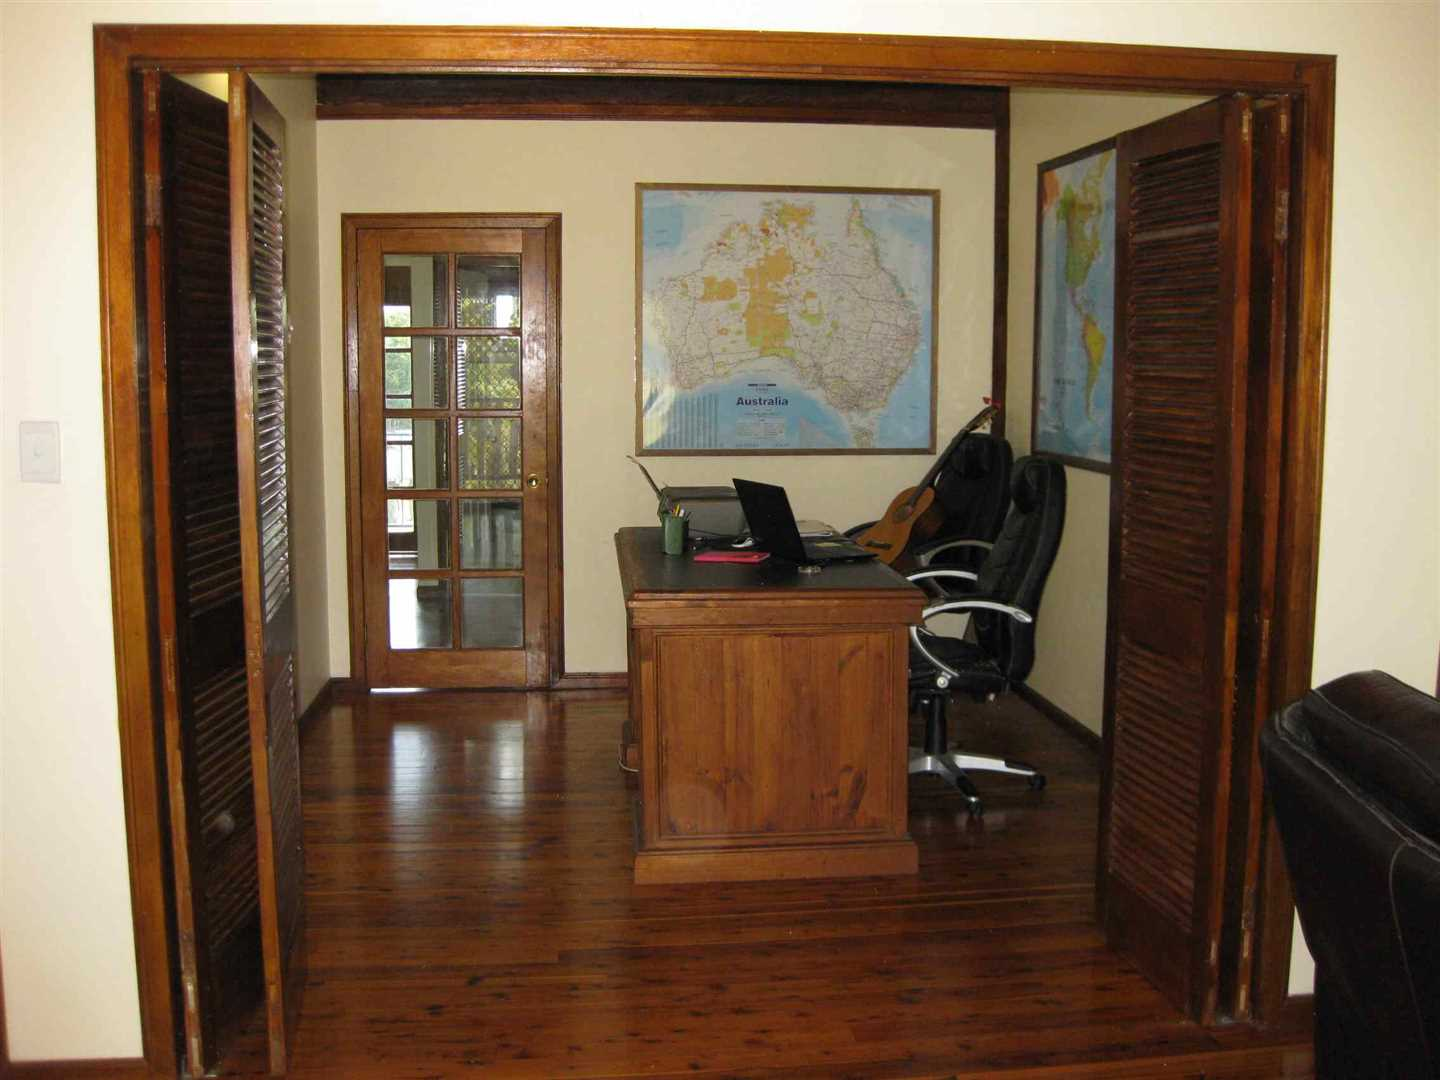 Inside view of part of home showing part of office